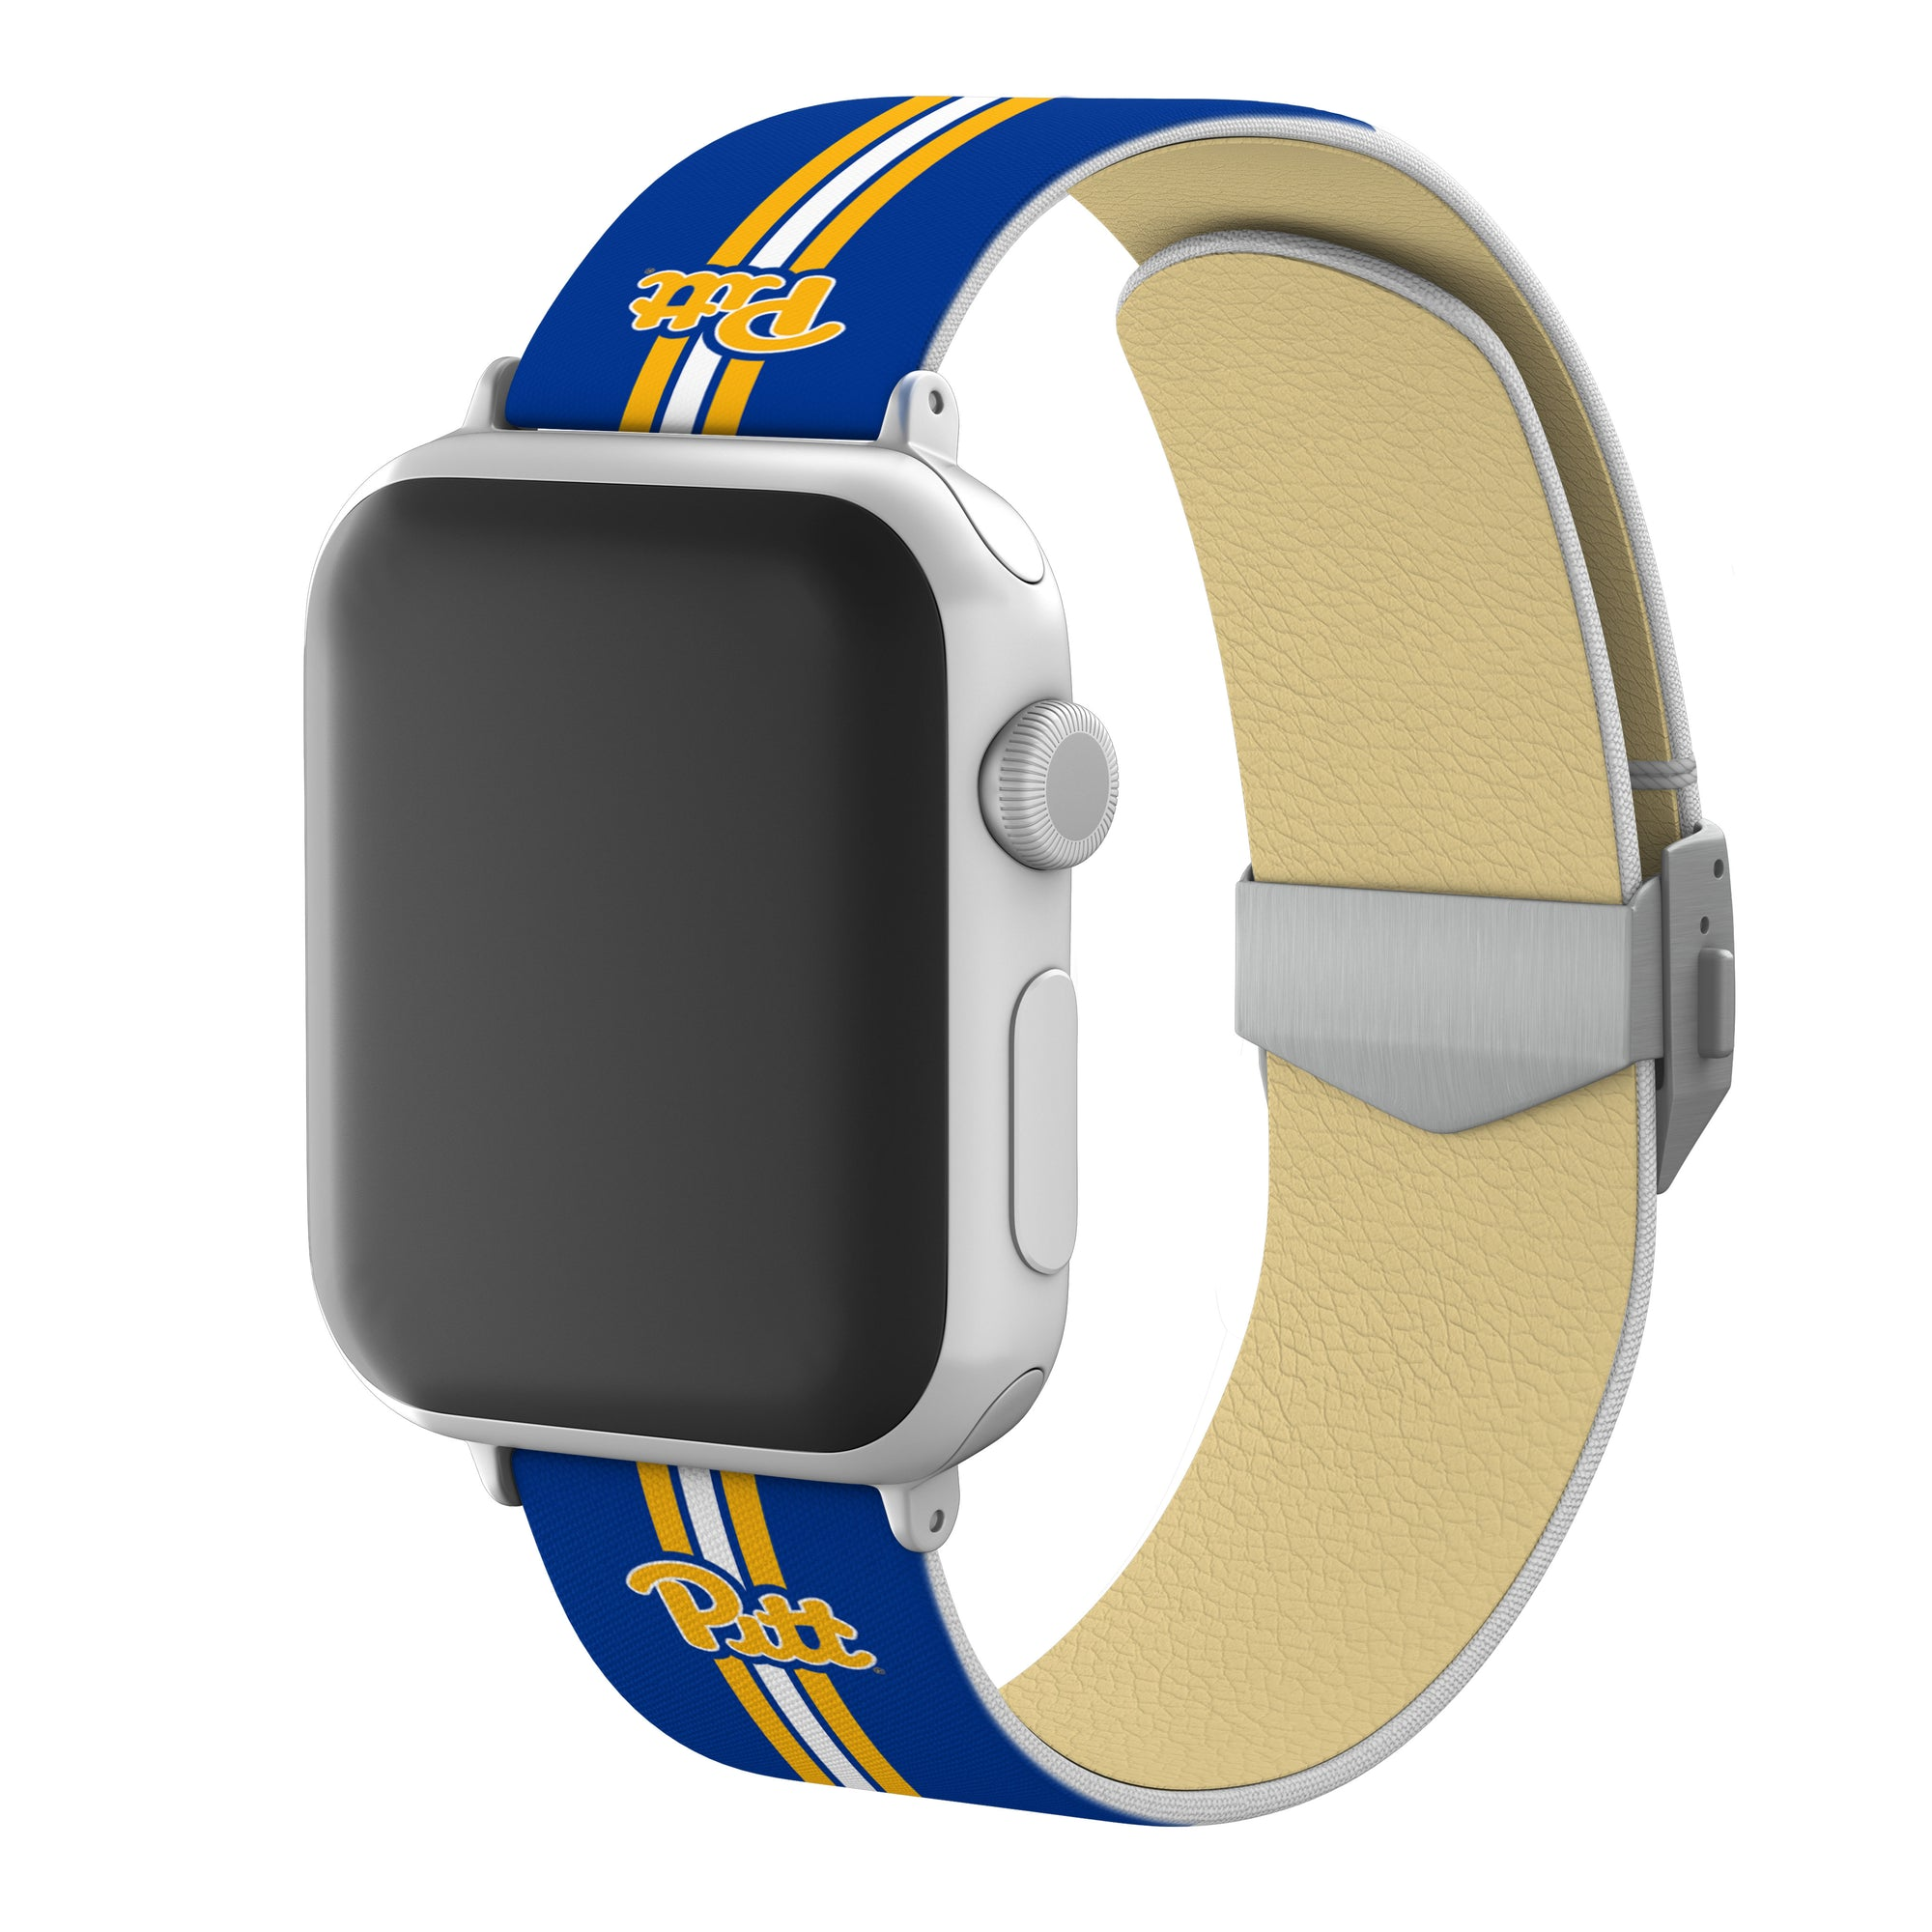 Pitt Panthers Full Print Watch Band With Engraved Buckle - AffinityBands